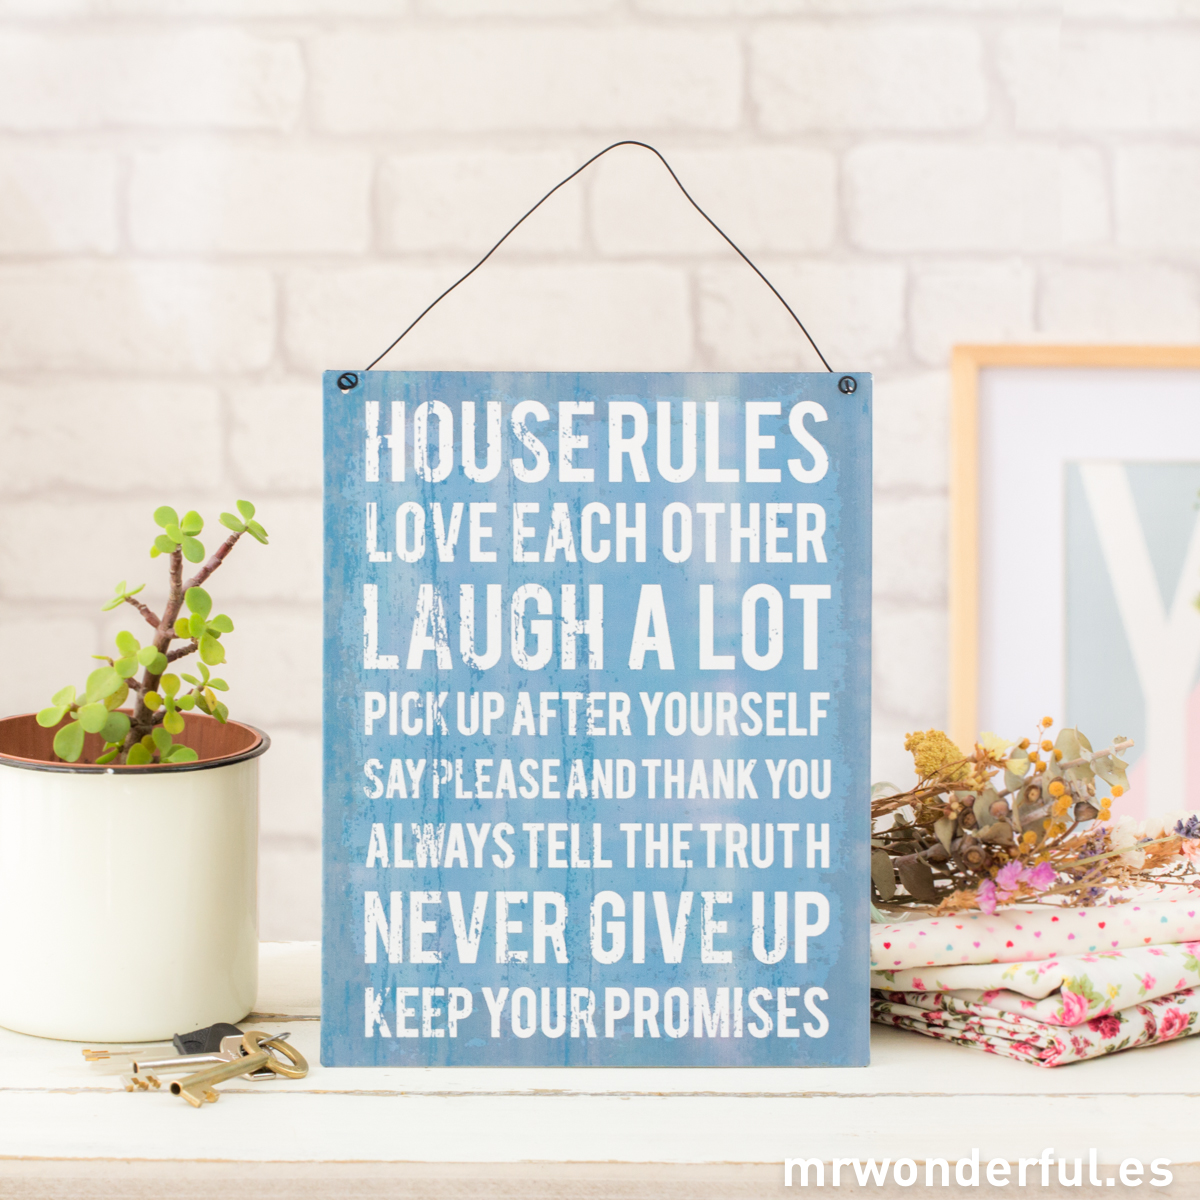 mrwonderful_WP1160_4_placa-metalica-house-rules-azul-1